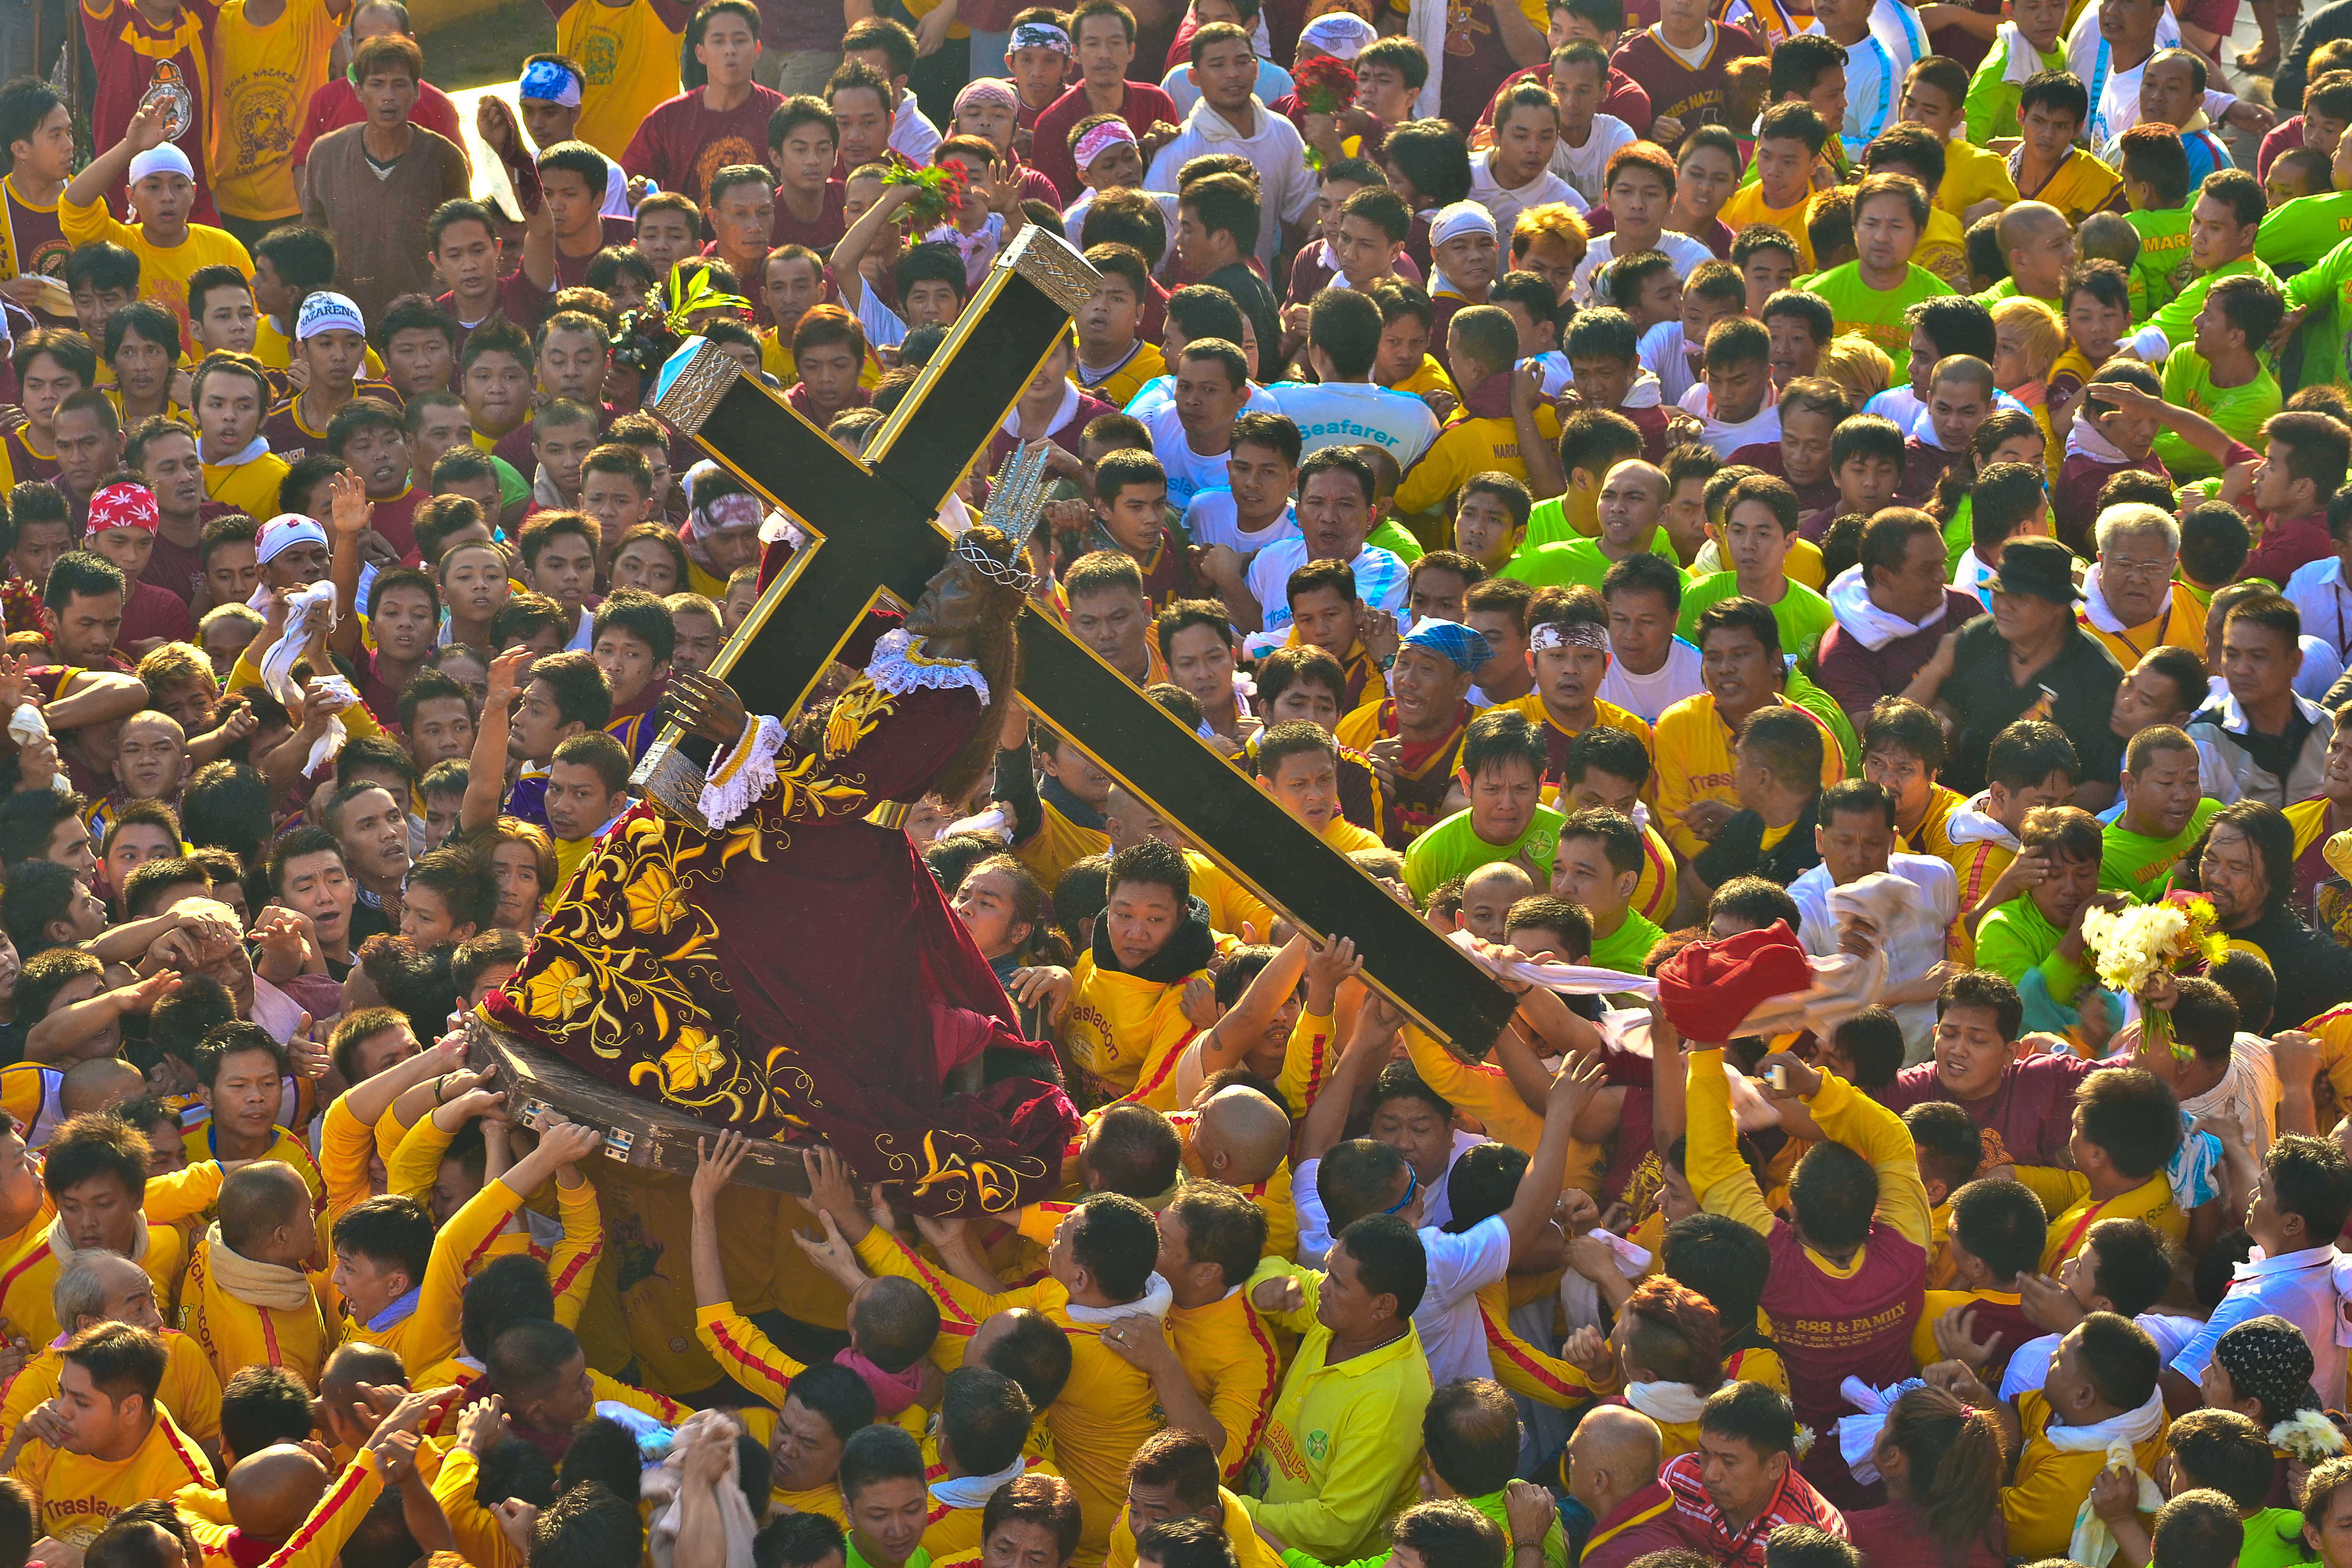 the feast of the black nazarene Feast of the black nazarene  every january 9 at quipo church in manila, the black nazarene, a life-sized statue of christ is carried through town by barefooted men yelling, viva señor, while huge crowd tries to touch the statu the statue.